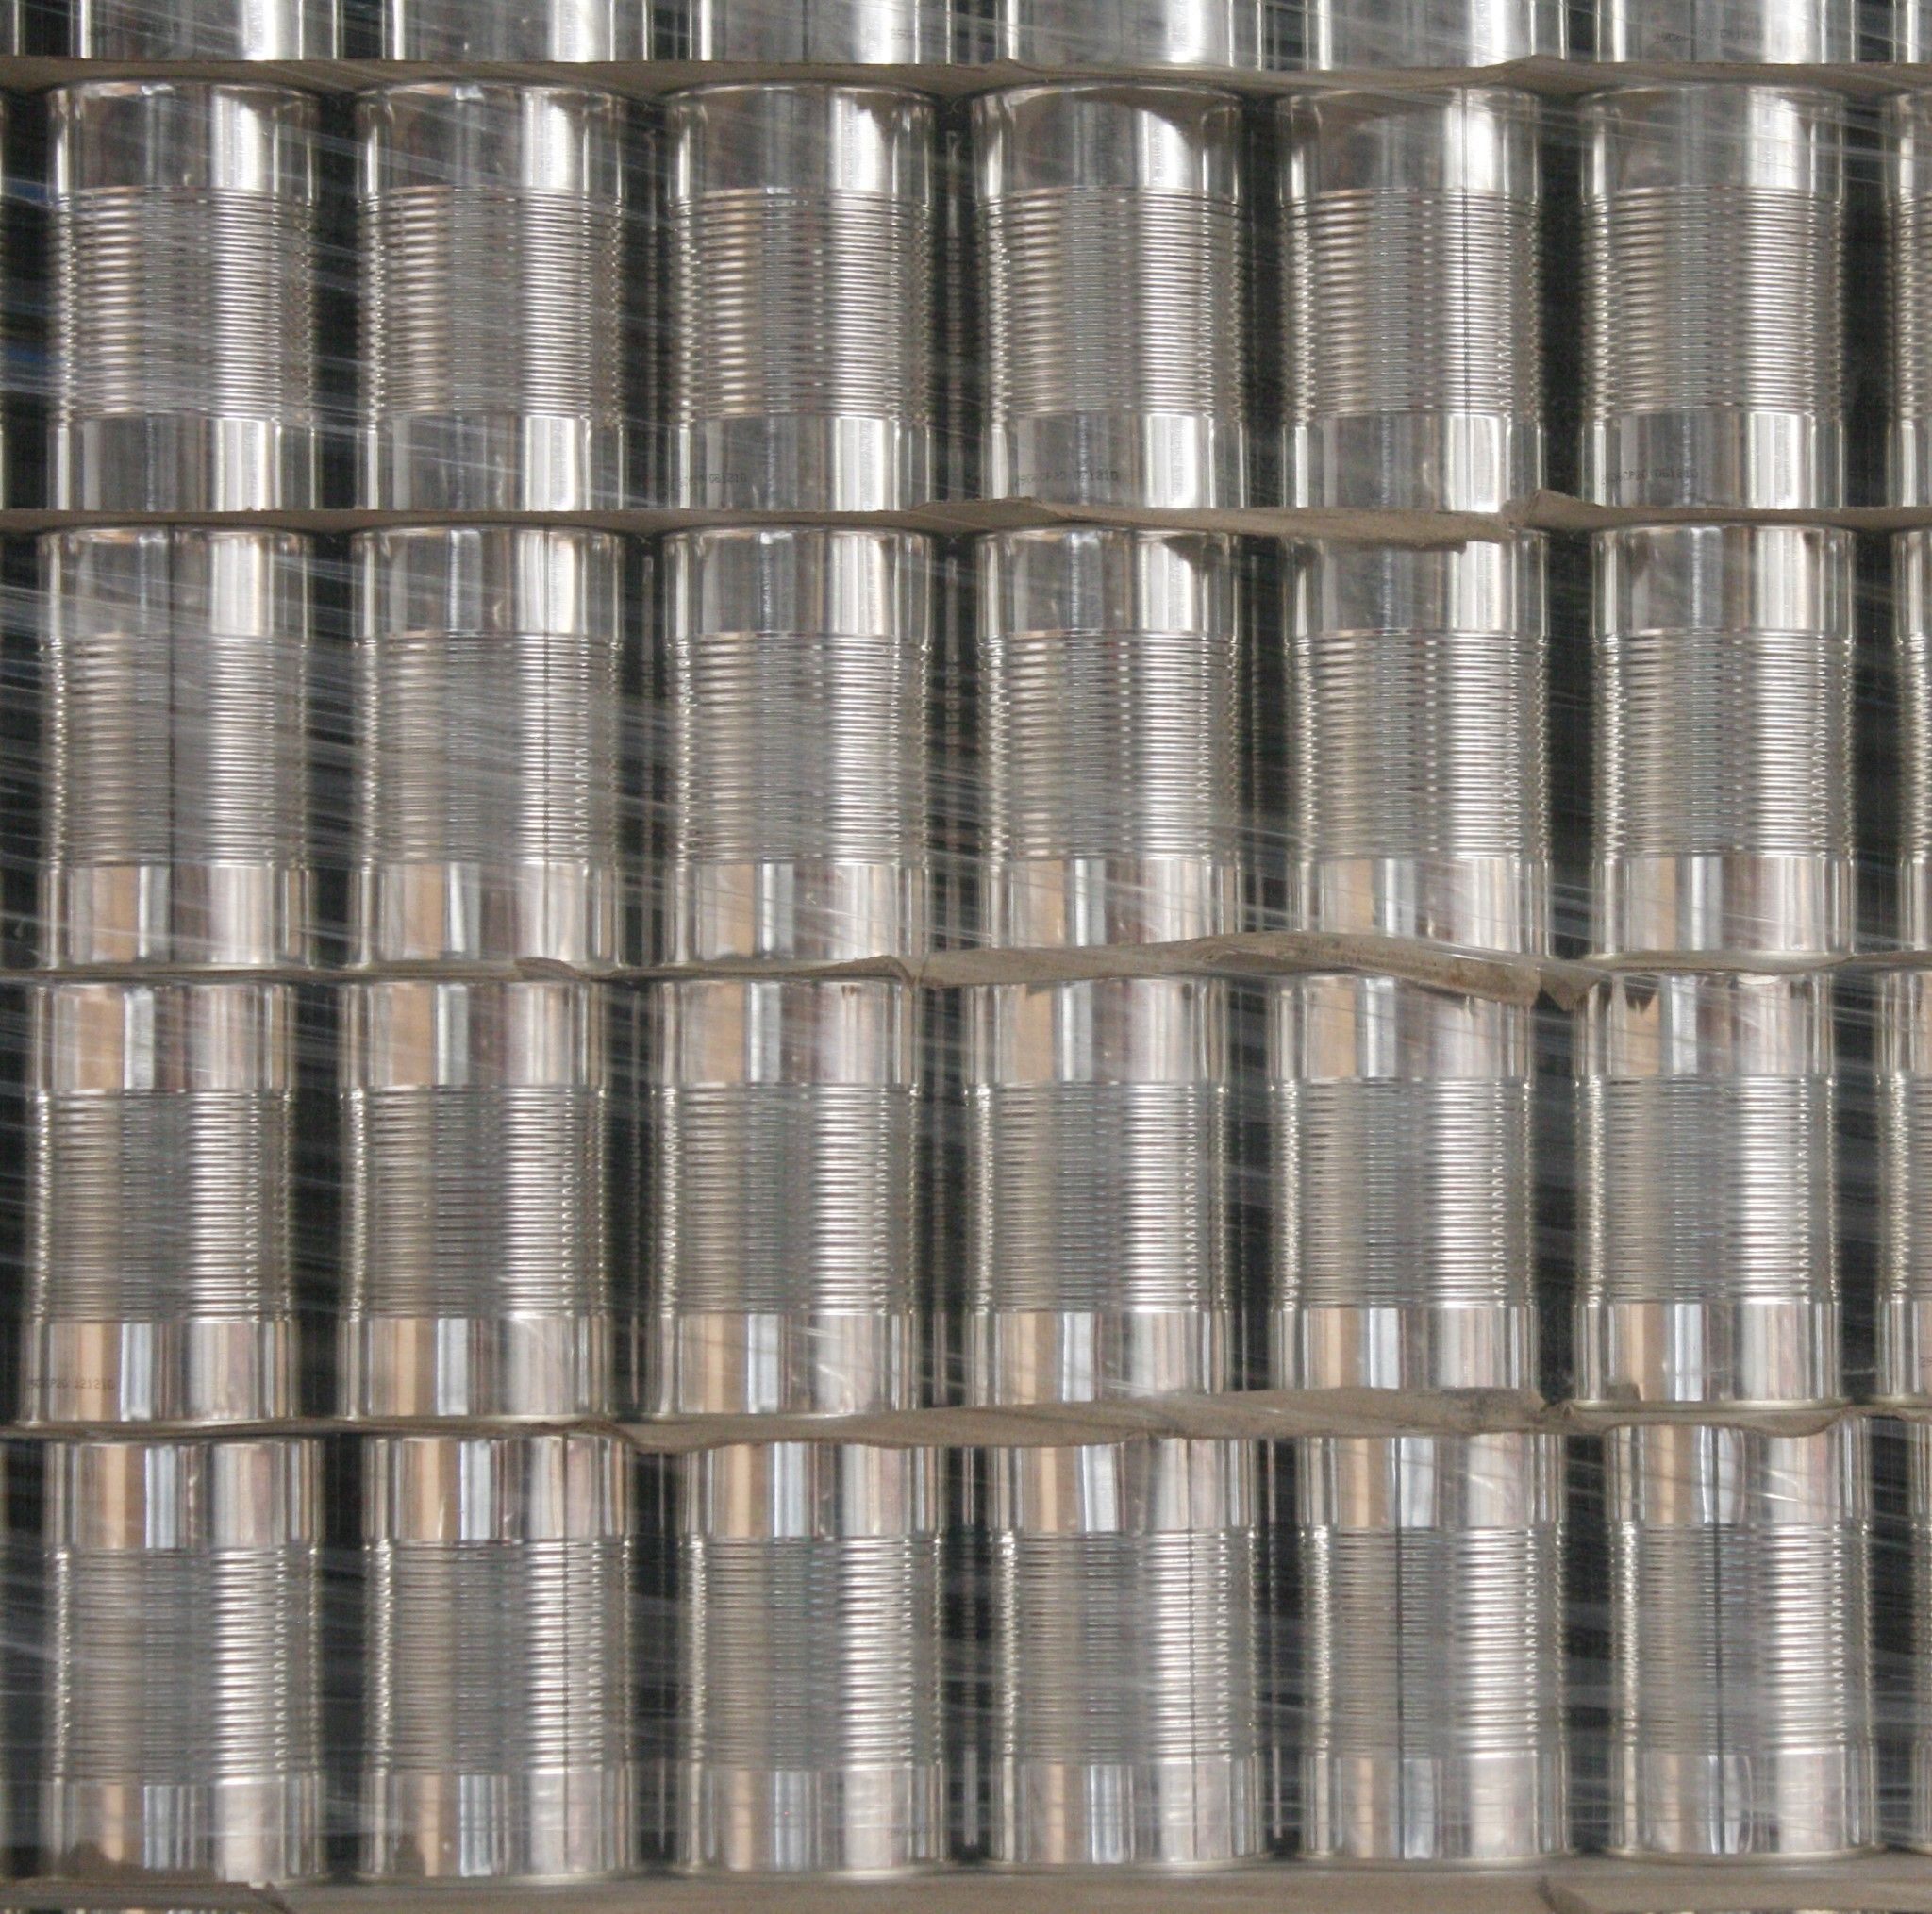 wholesale tin cans picture